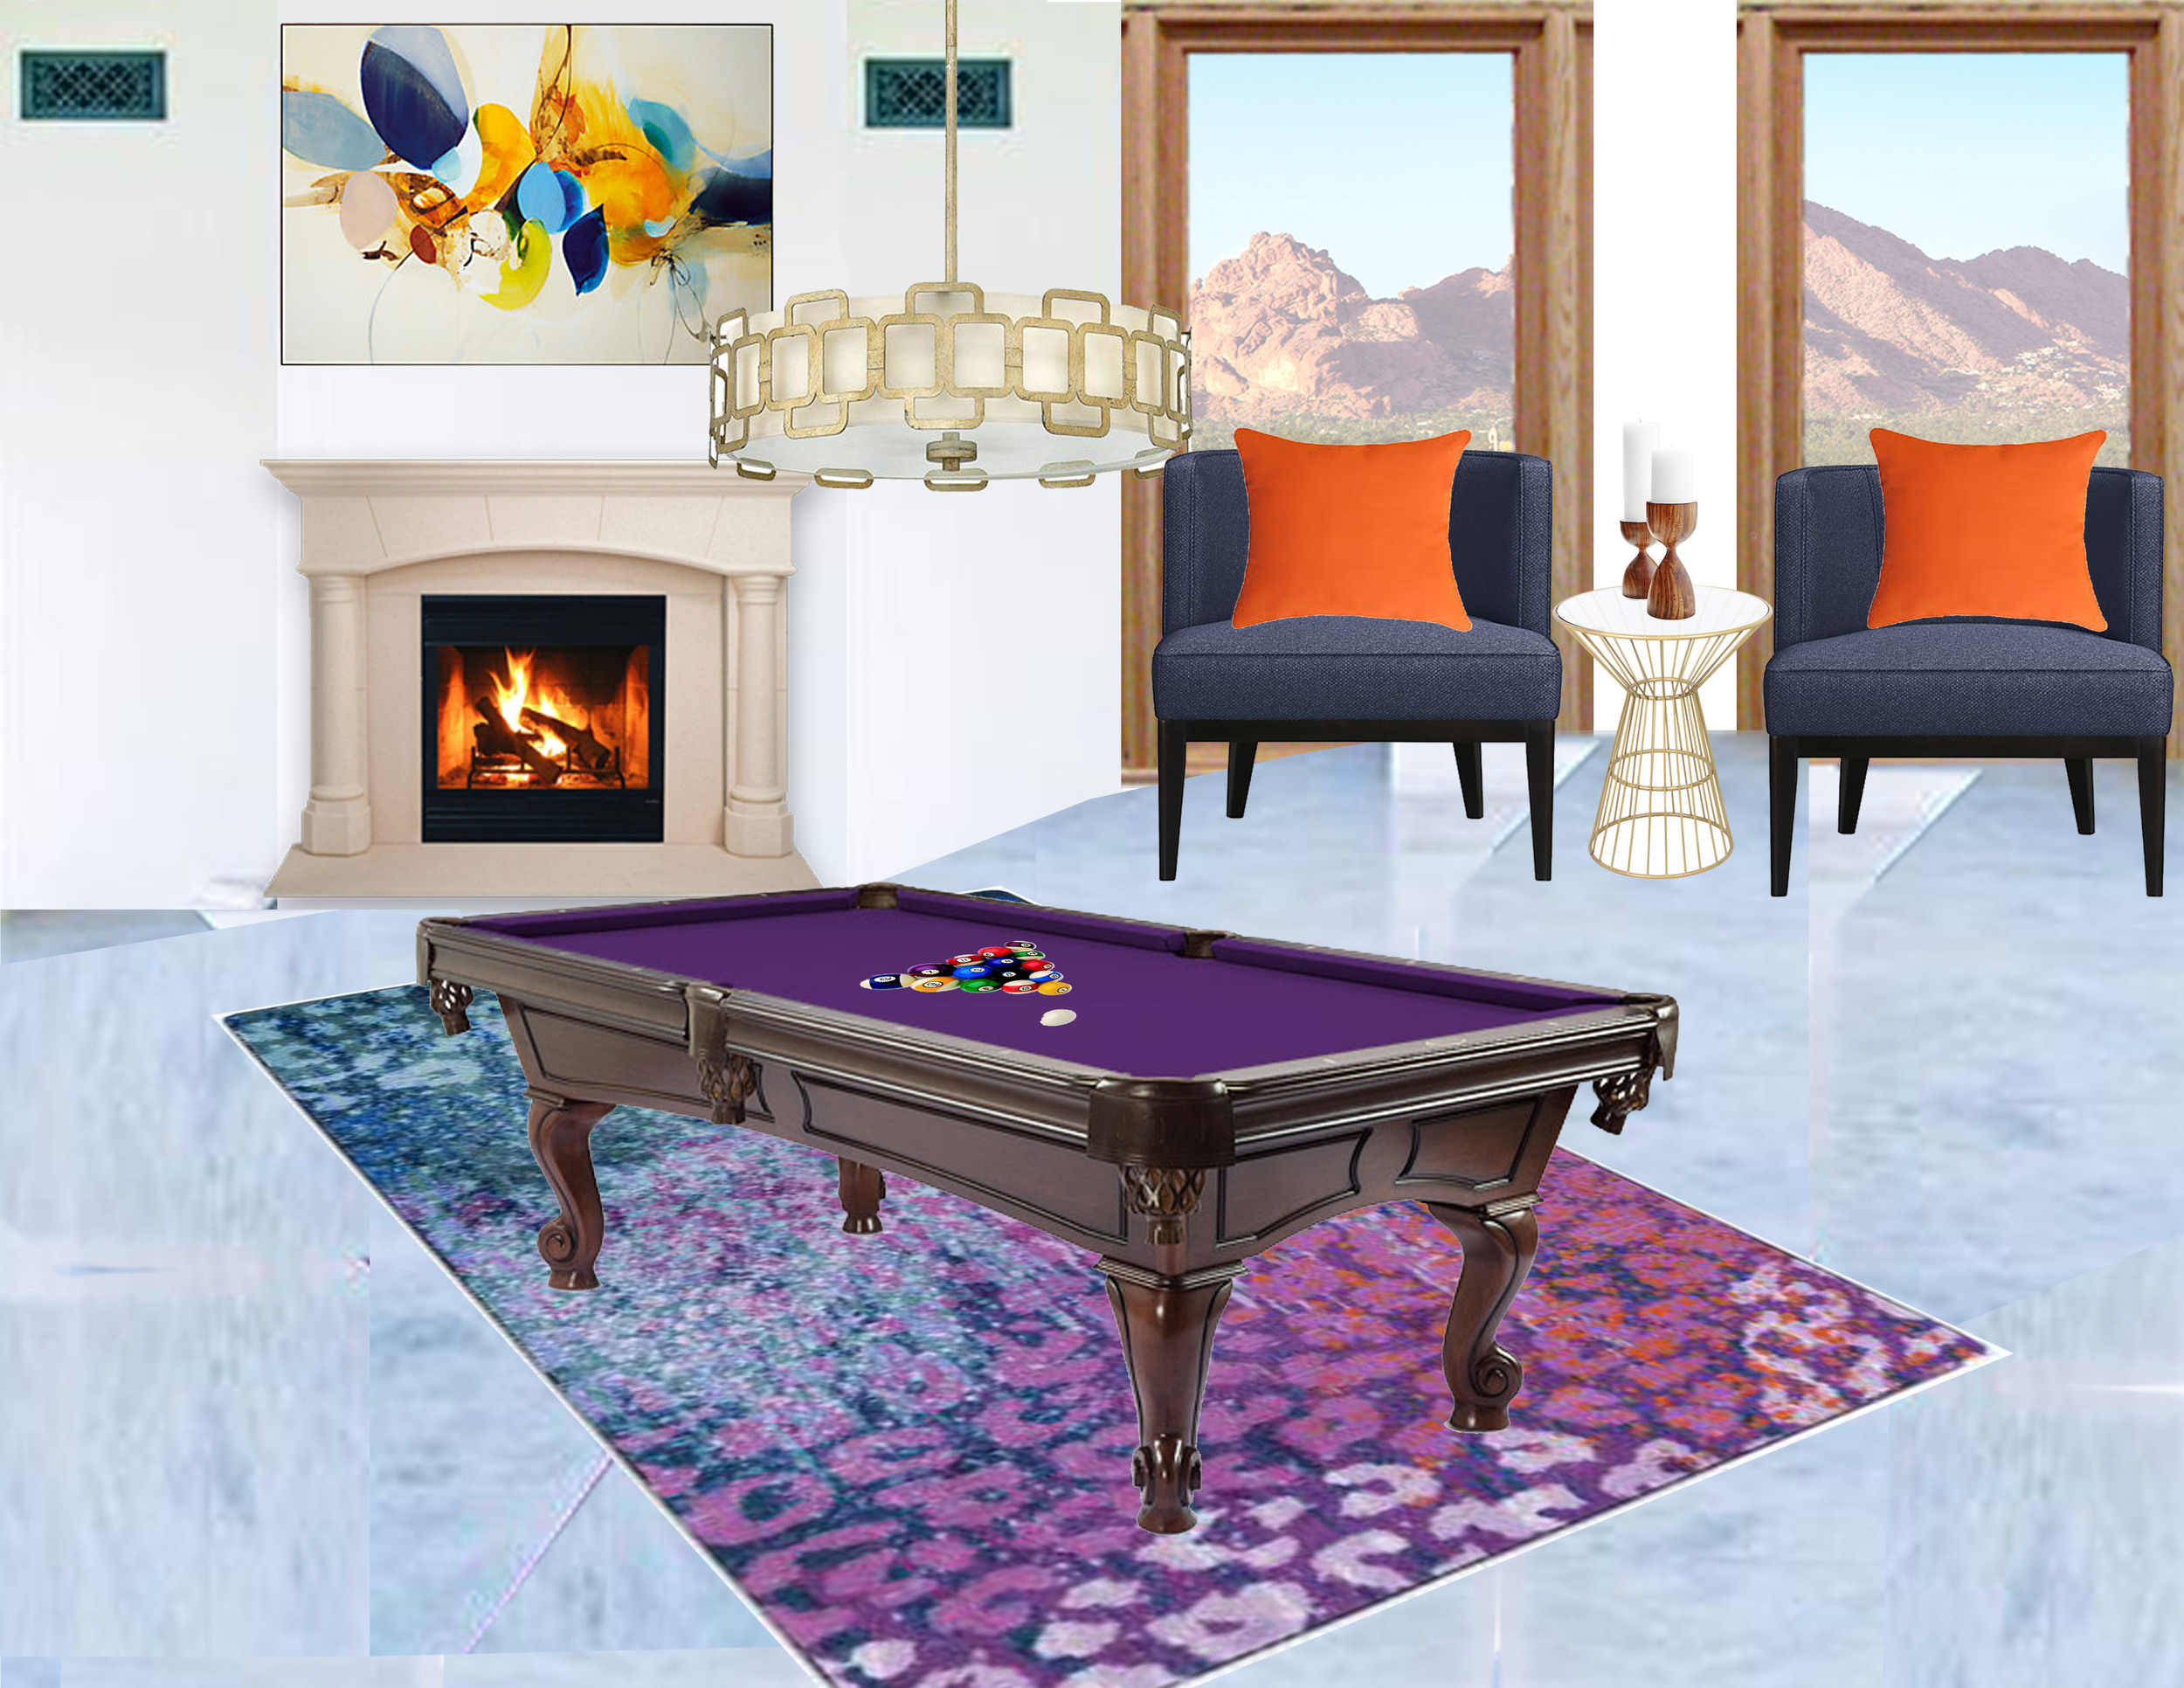 Pool Room, Design